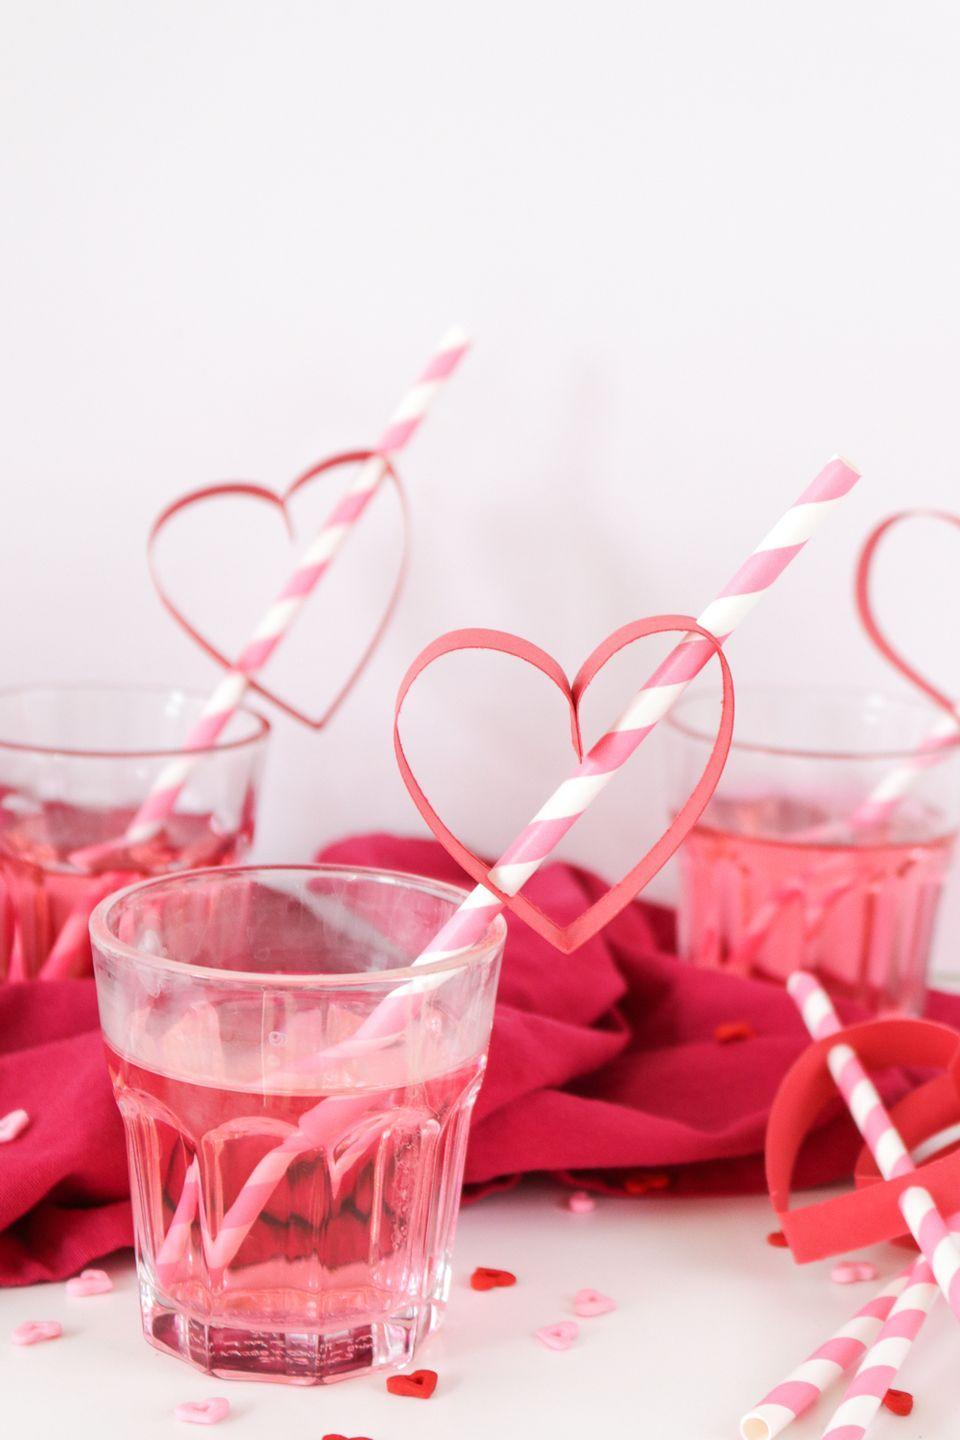 "<p>Punch up your Valentine's Day drinks with this five-minute DIY. Just use a hole punch to thread colorful card stock hearts onto paper straws, and up your serving game big time.</p><p><em><a href=""https://www.clubcrafted.com/diy-heart-straws-for-valentines-day/"" rel=""nofollow noopener"" target=""_blank"" data-ylk=""slk:Get the how-to at Club Crafted»"" class=""link rapid-noclick-resp"">Get the how-to at Club Crafted»</a></em><br></p>"